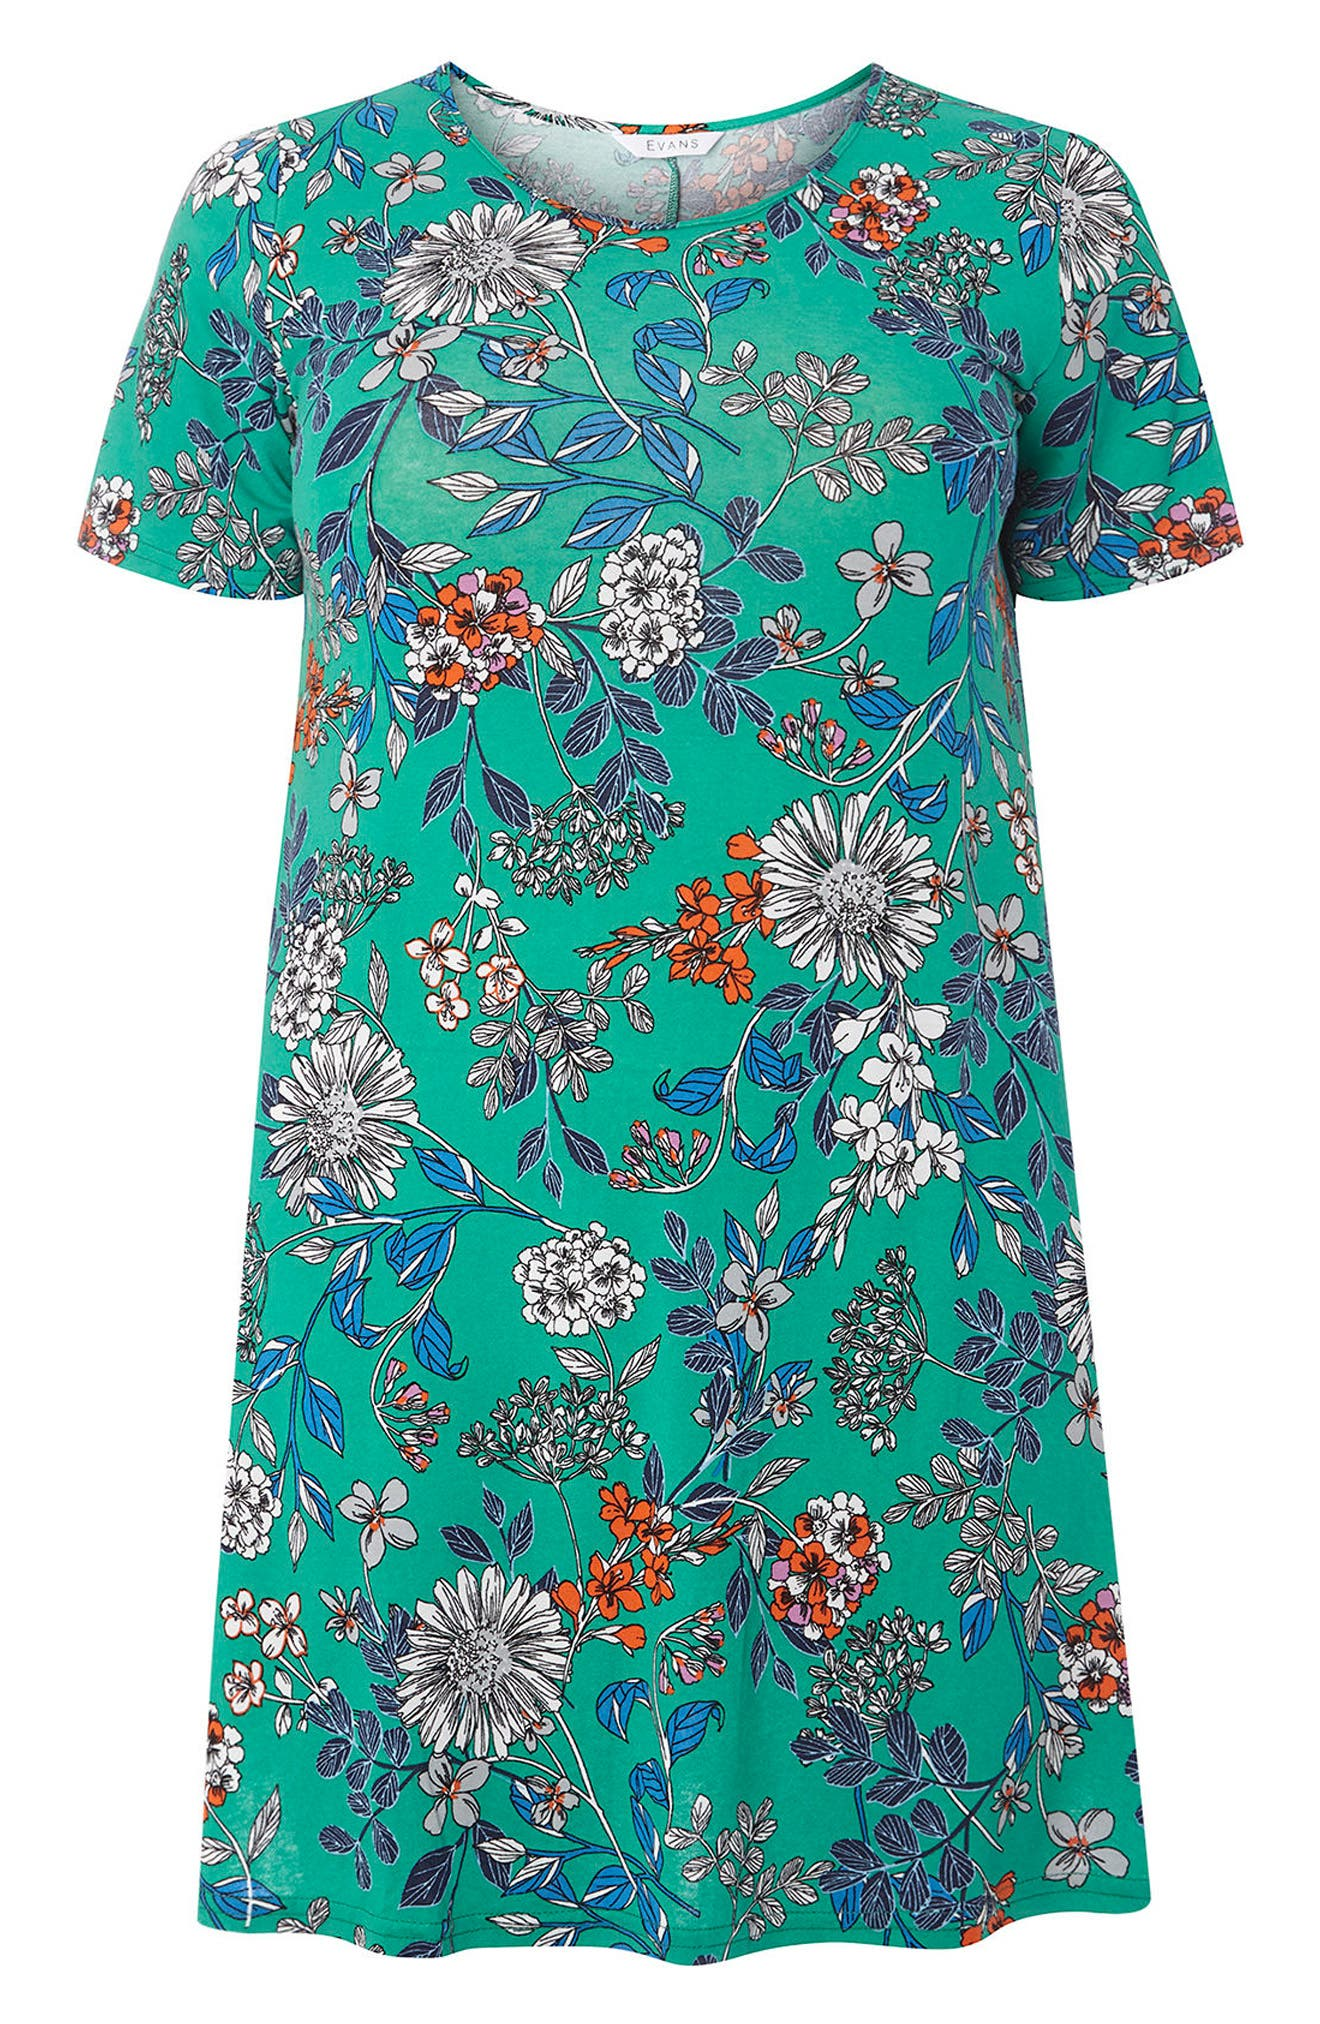 Evans Floral Print Swing Top (Plus Size)